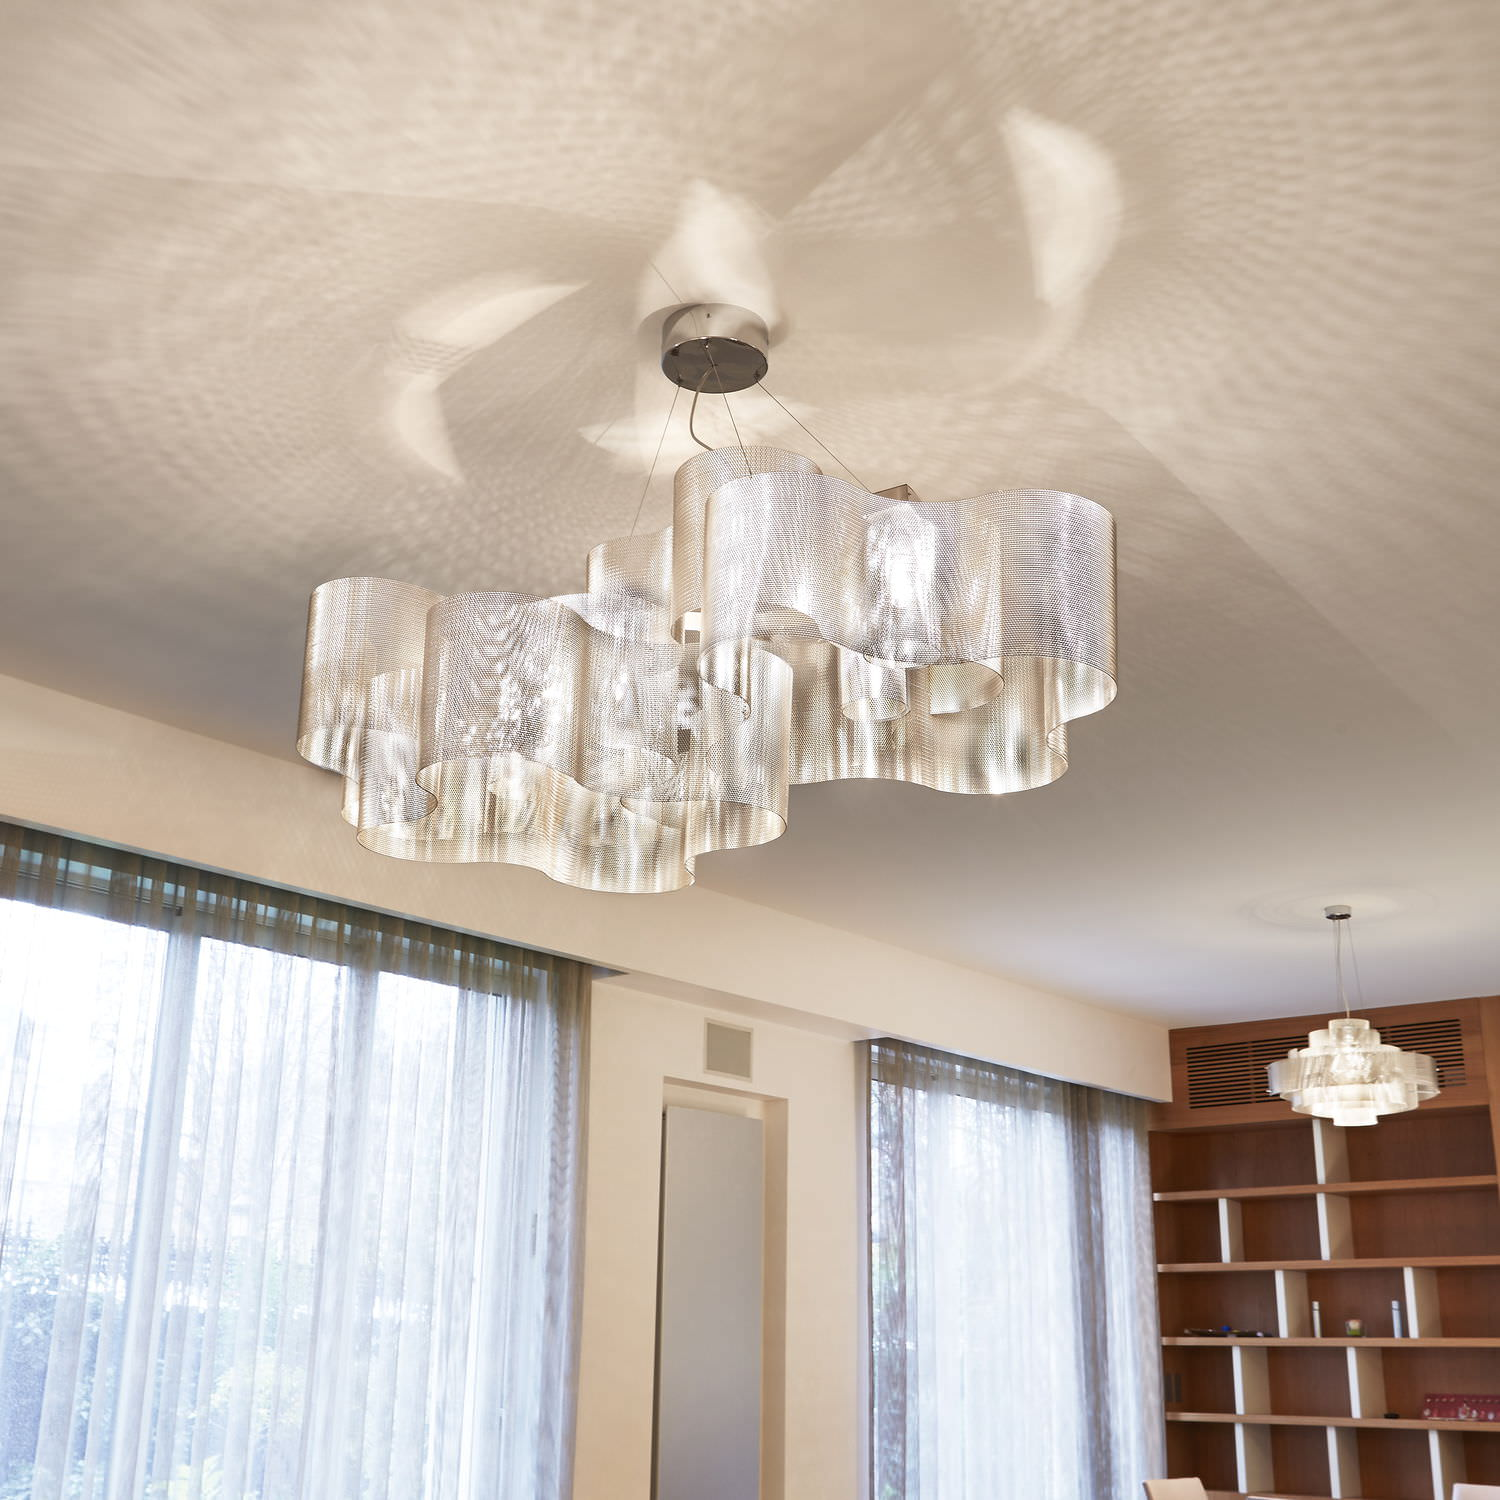 wagell bsweden ceiling pendant for more light jonas architecture cloud work design